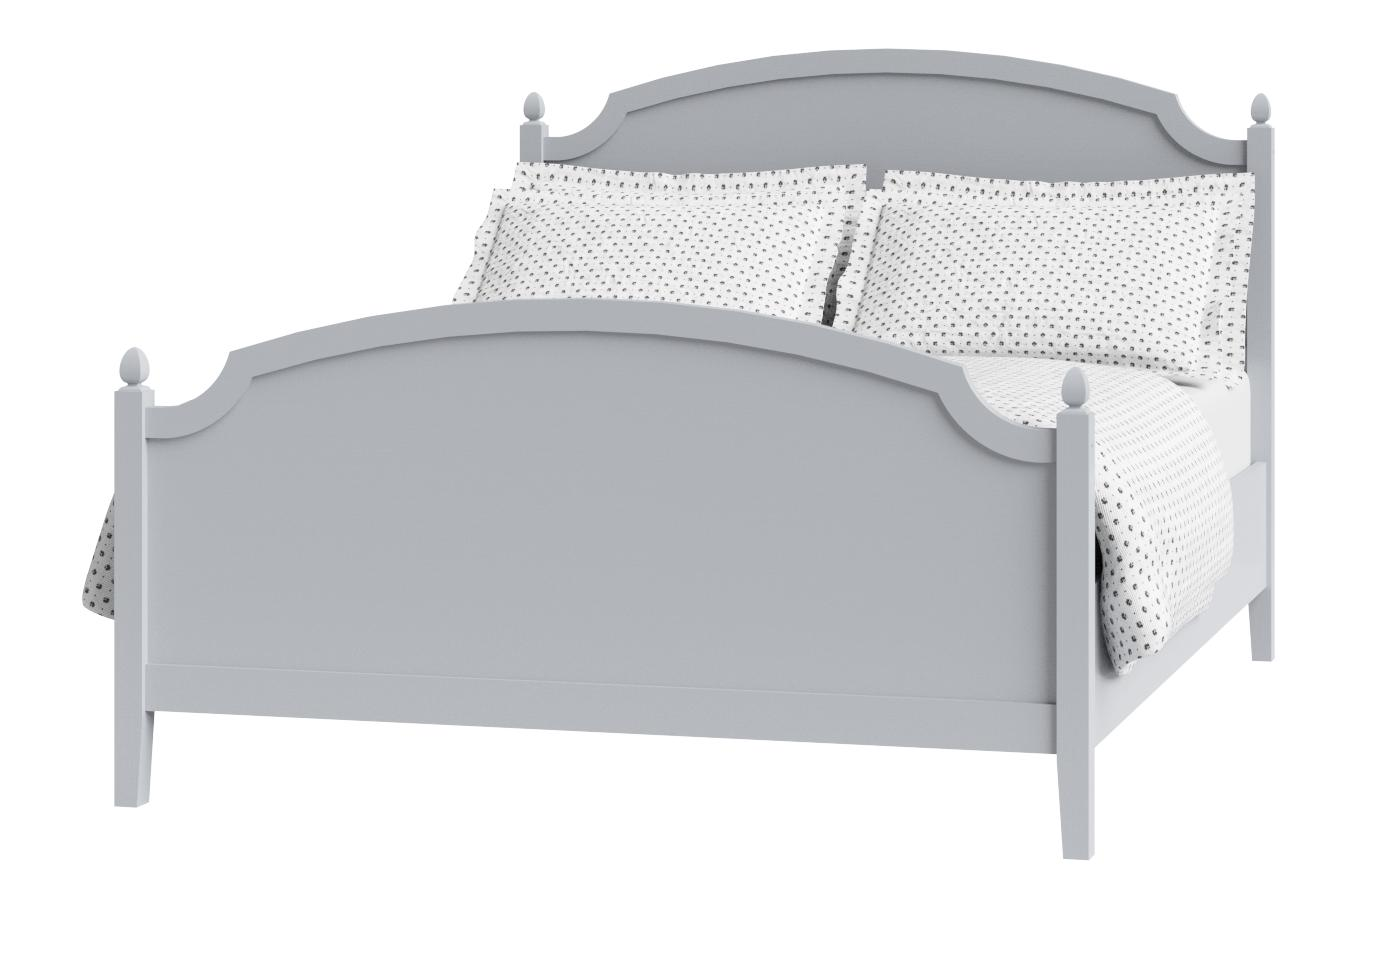 Cutout of Kipling painted wood bed in grey